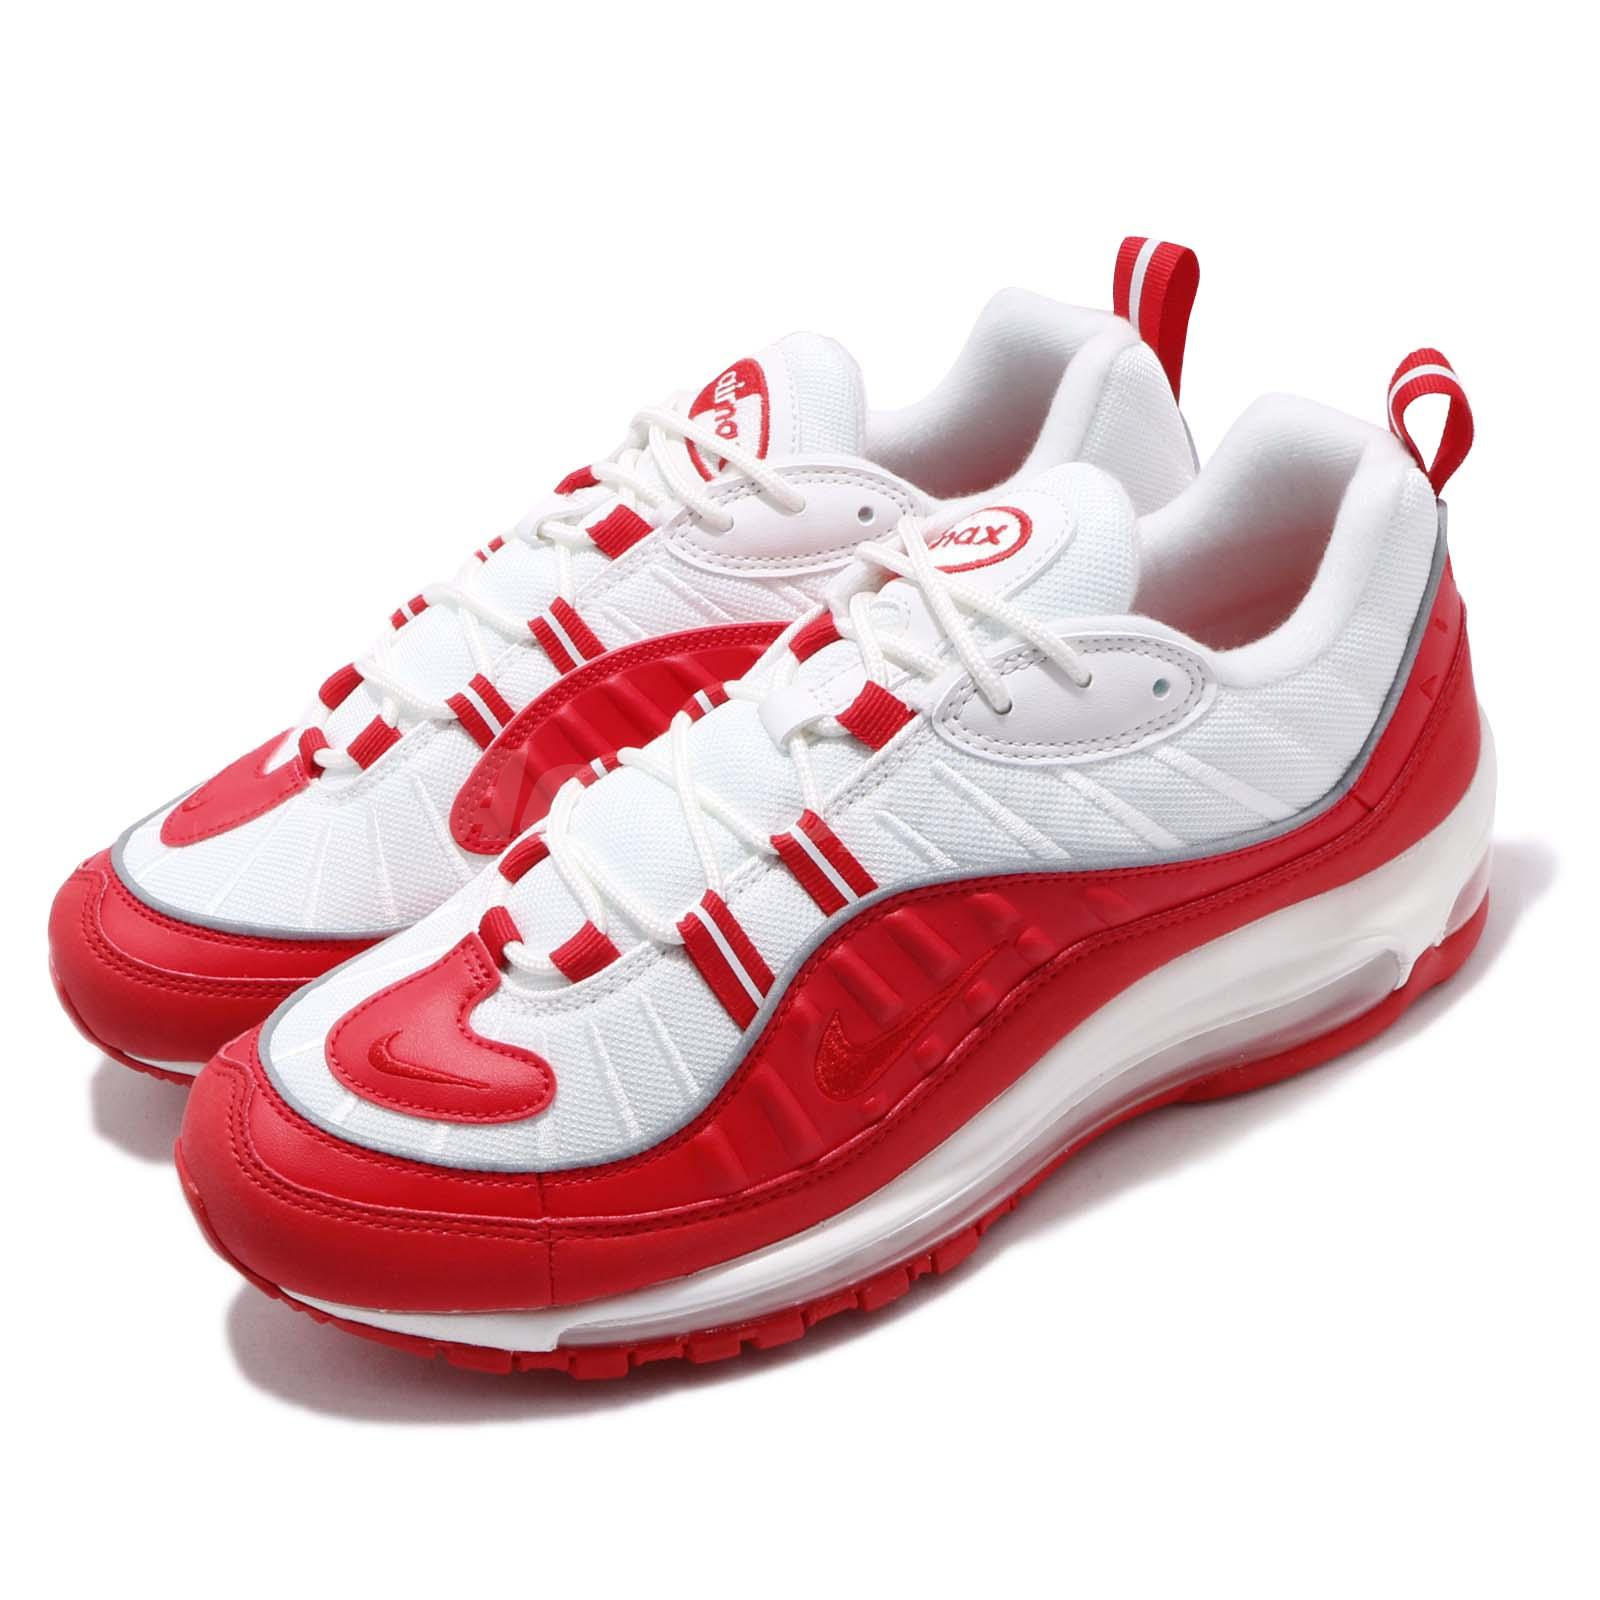 the latest 21fe1 8397d Details about Nike Air Max 98 University Red White Mens Running Shoes NSW  Sneakers 640744-602